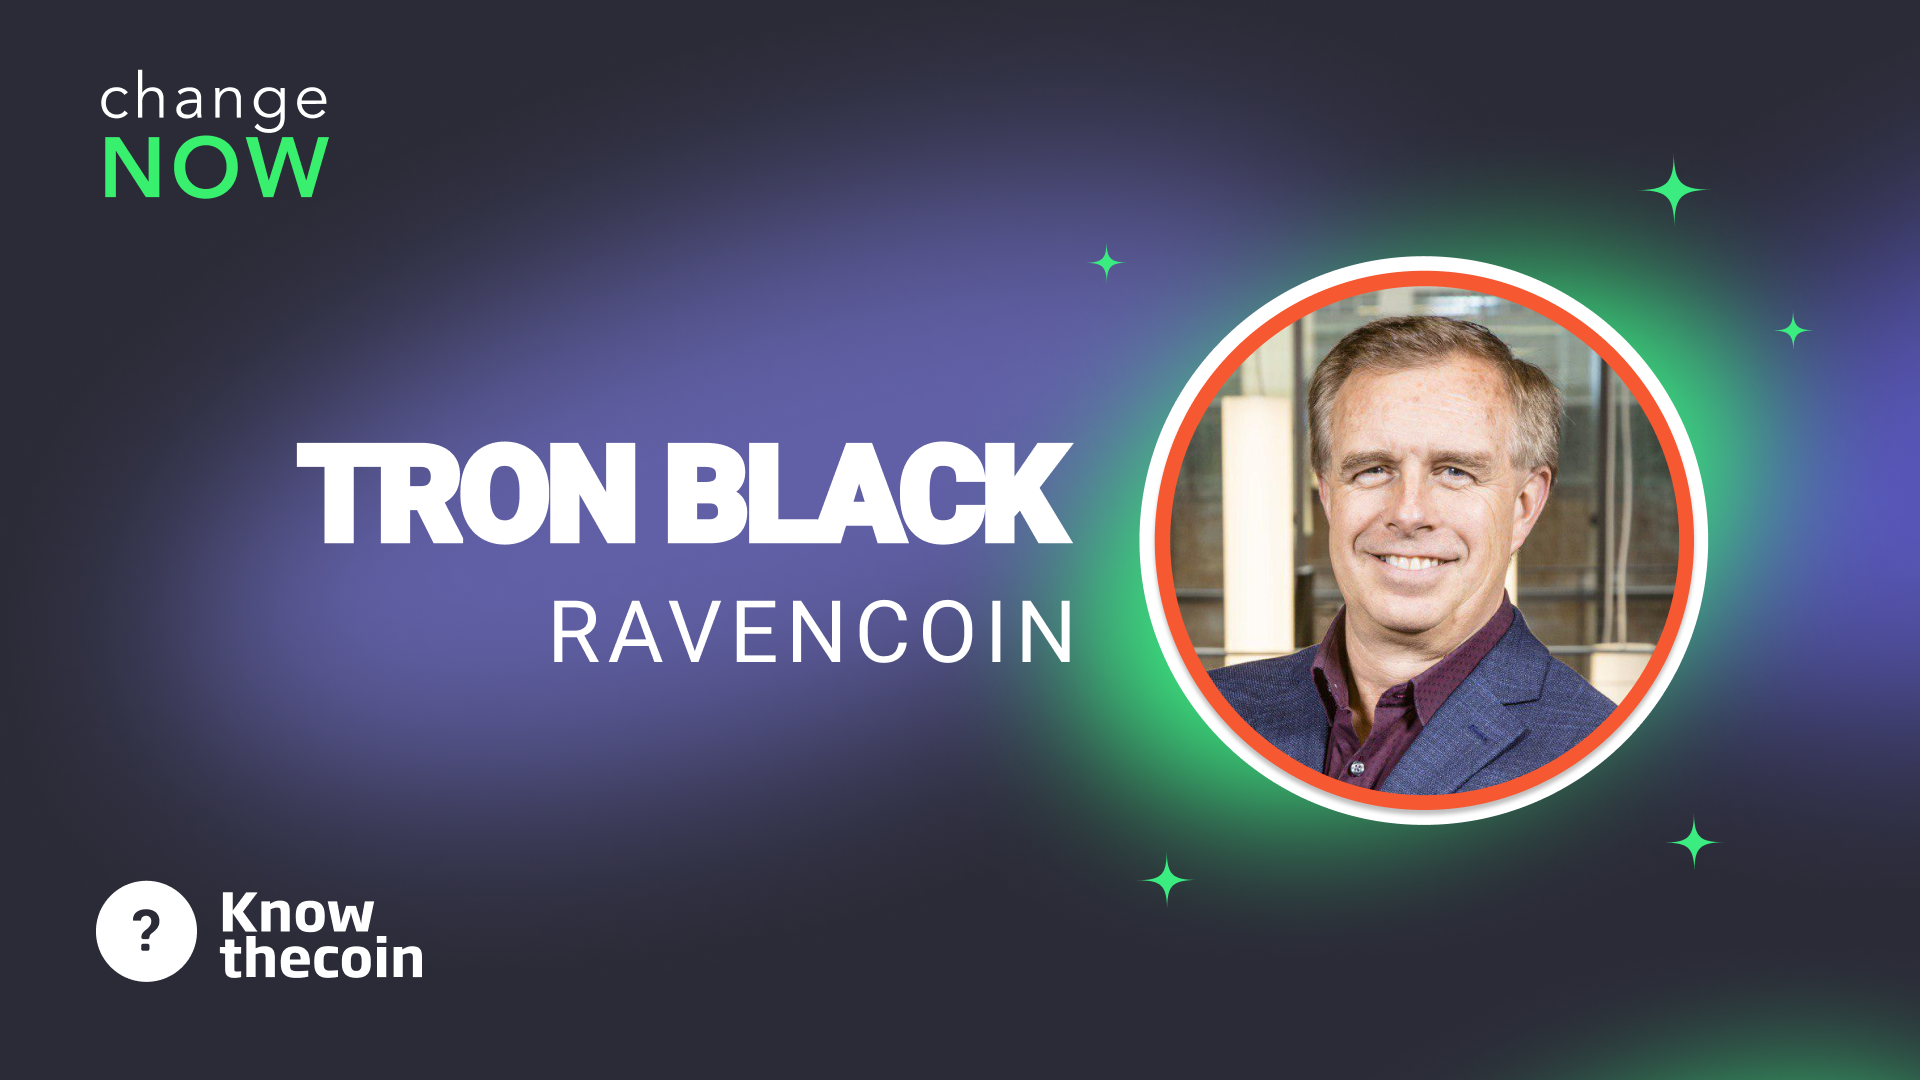 Know The Coin: Ravencoin's Lead Developer Tron Black